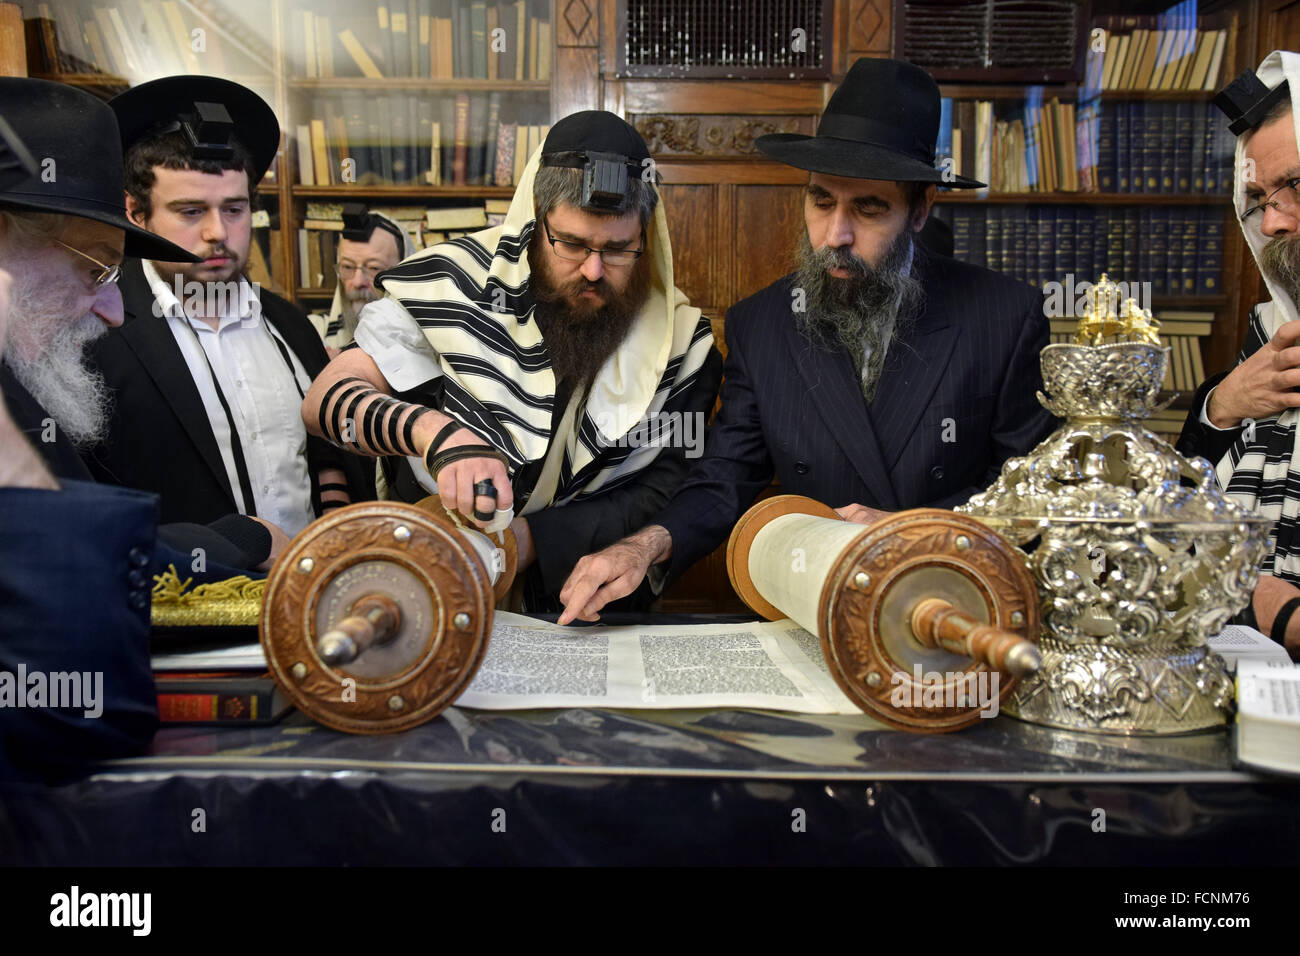 A religious Jewish man perpares to recite a blessing before a Torah reading in Crown Heights, Brooklyn, New York - Stock Image